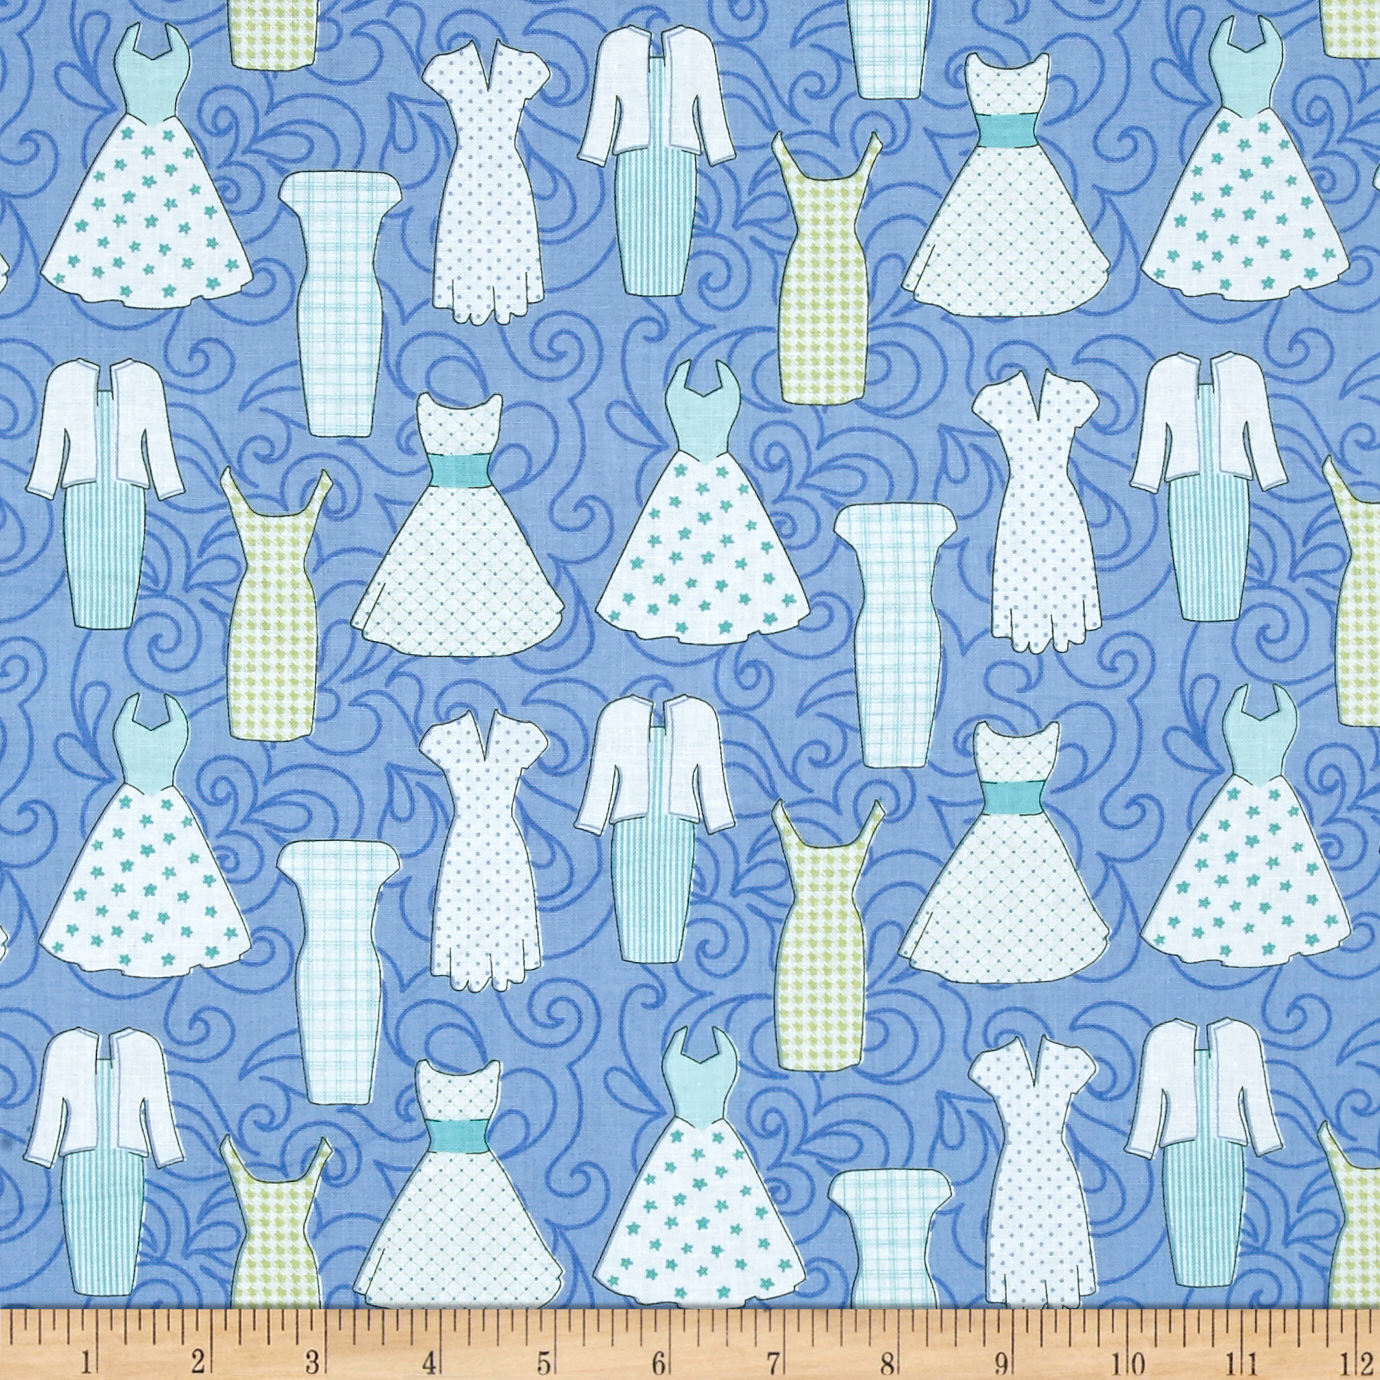 INOpets.com Anything for Pets Parents & Their Pets Sewing Room Dresses Peri Blue Fabric